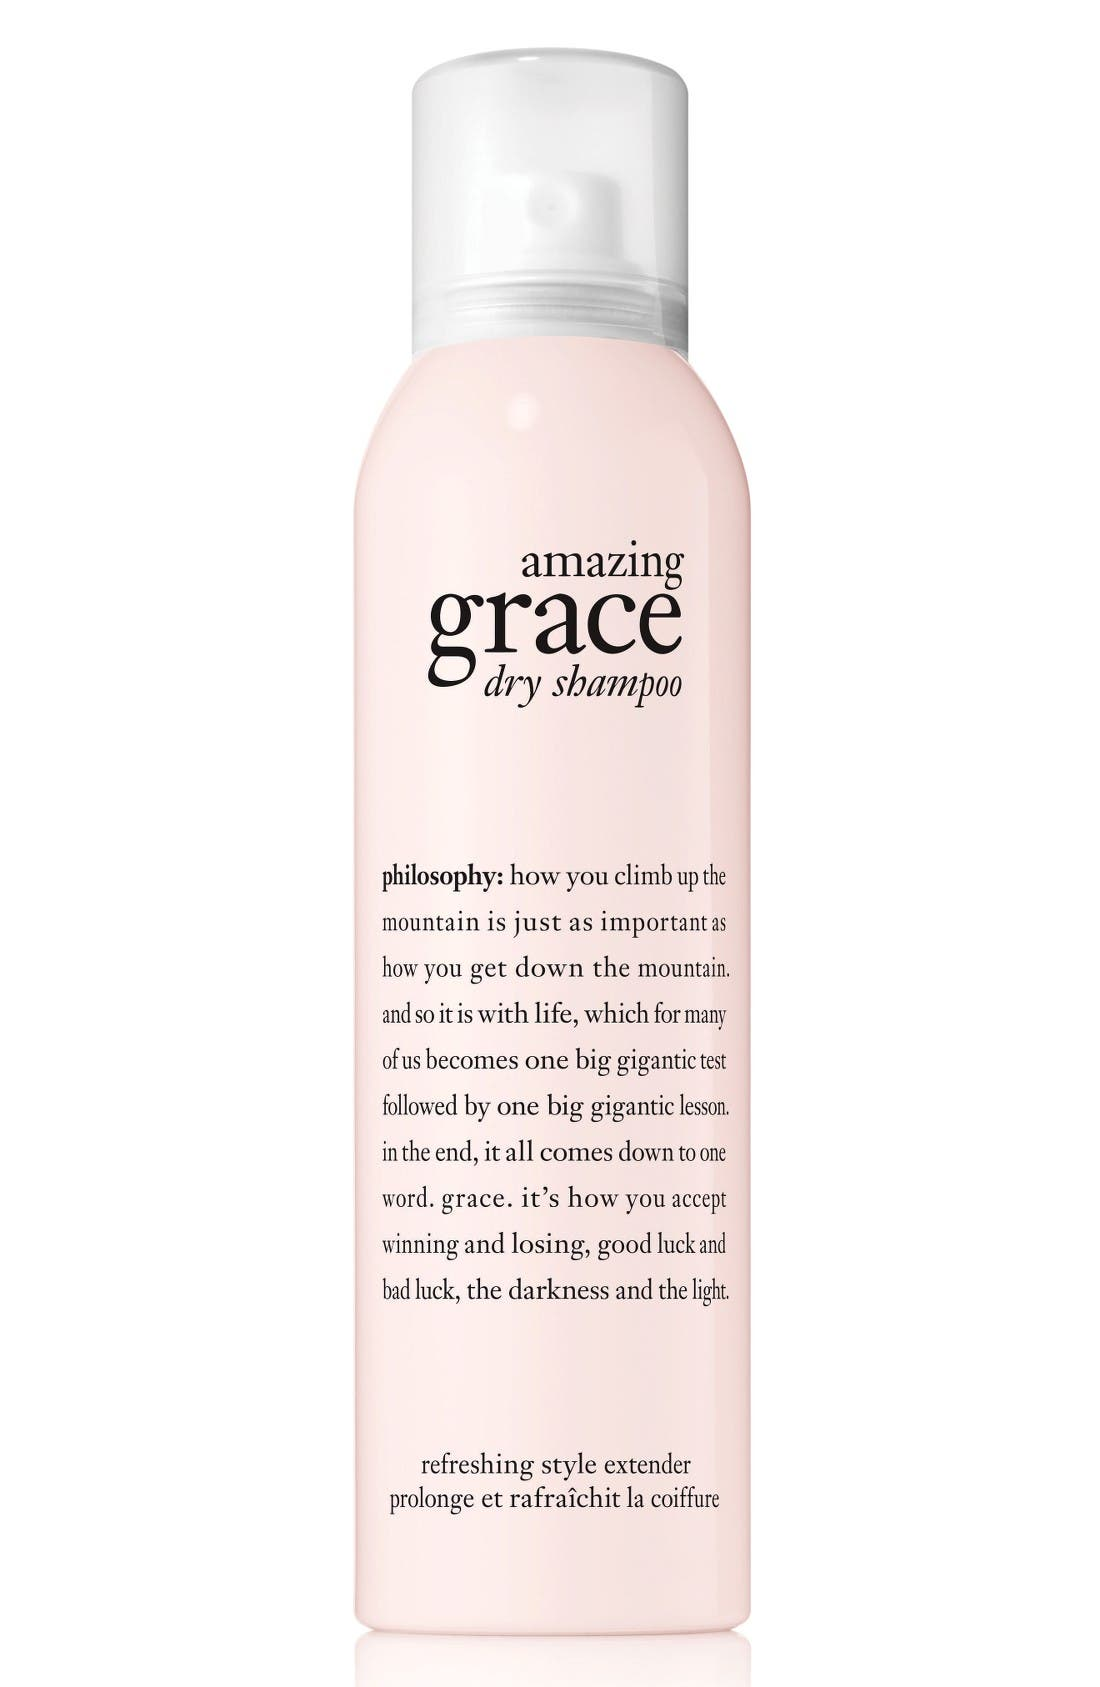 Alternate Image 1 Selected - philosophy amazing grace dry shampoo